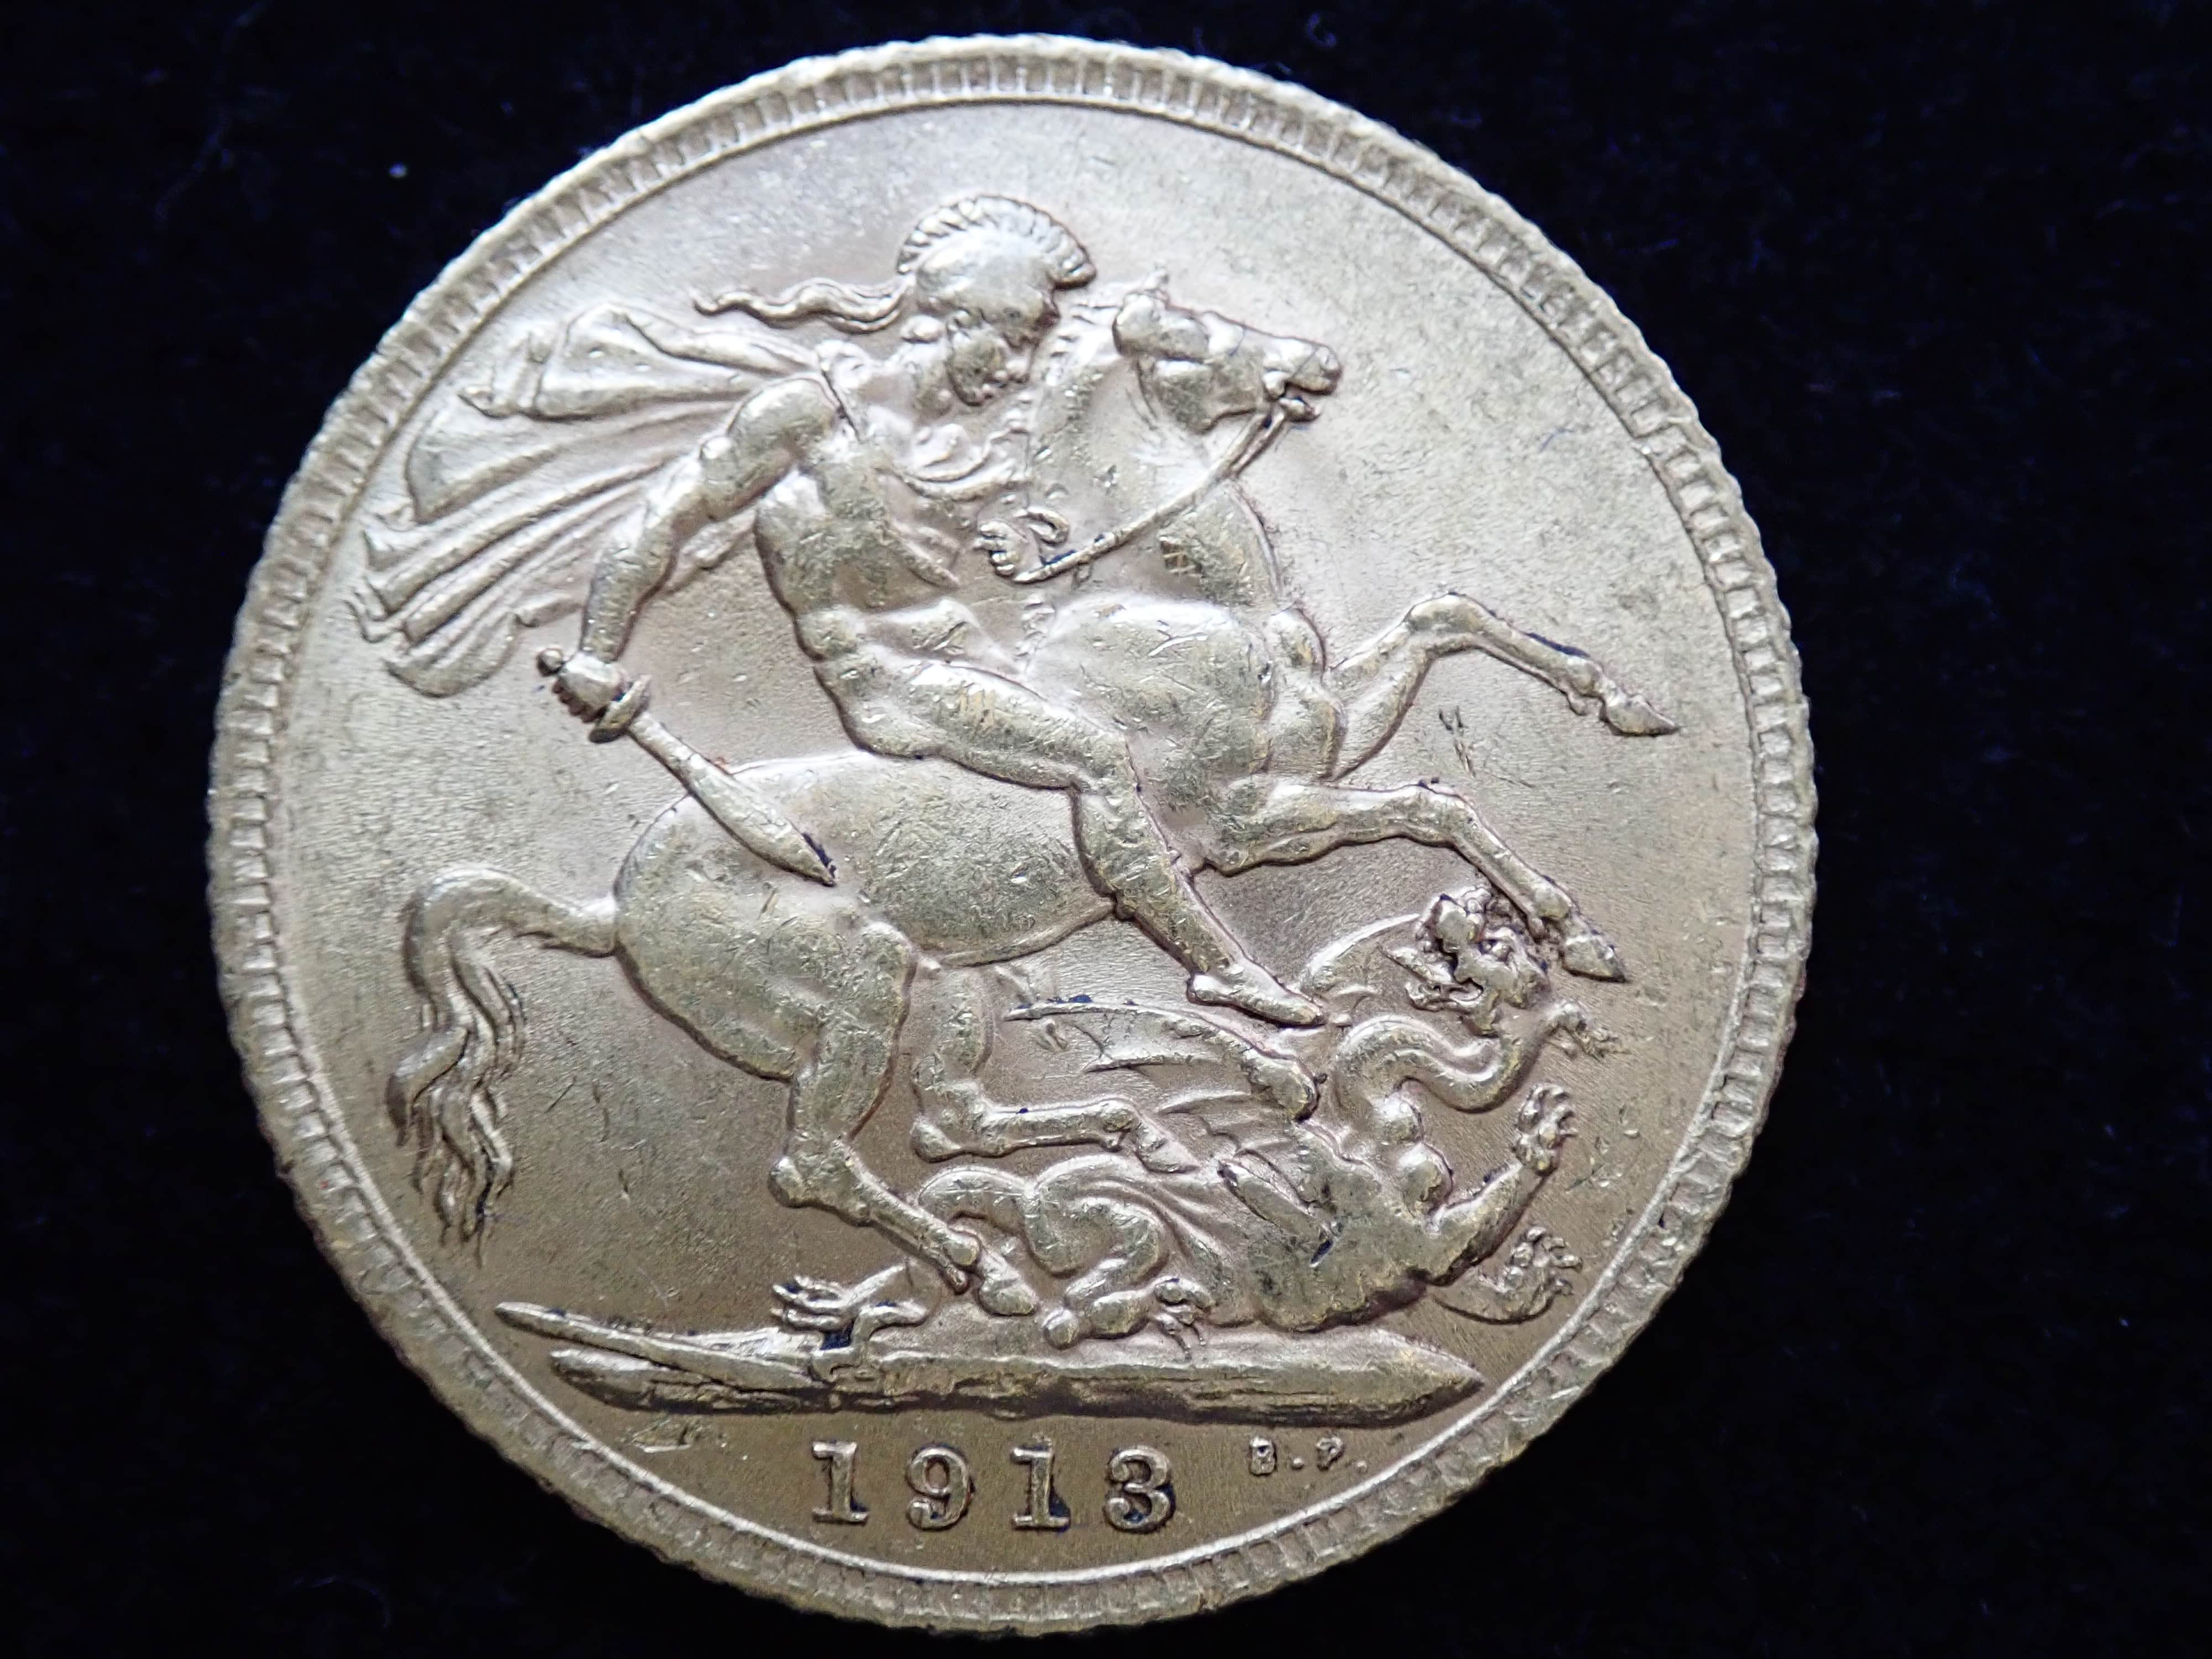 AA000814 - 1913 Gold Full Sovereign Coin - King George V- London Mint #355